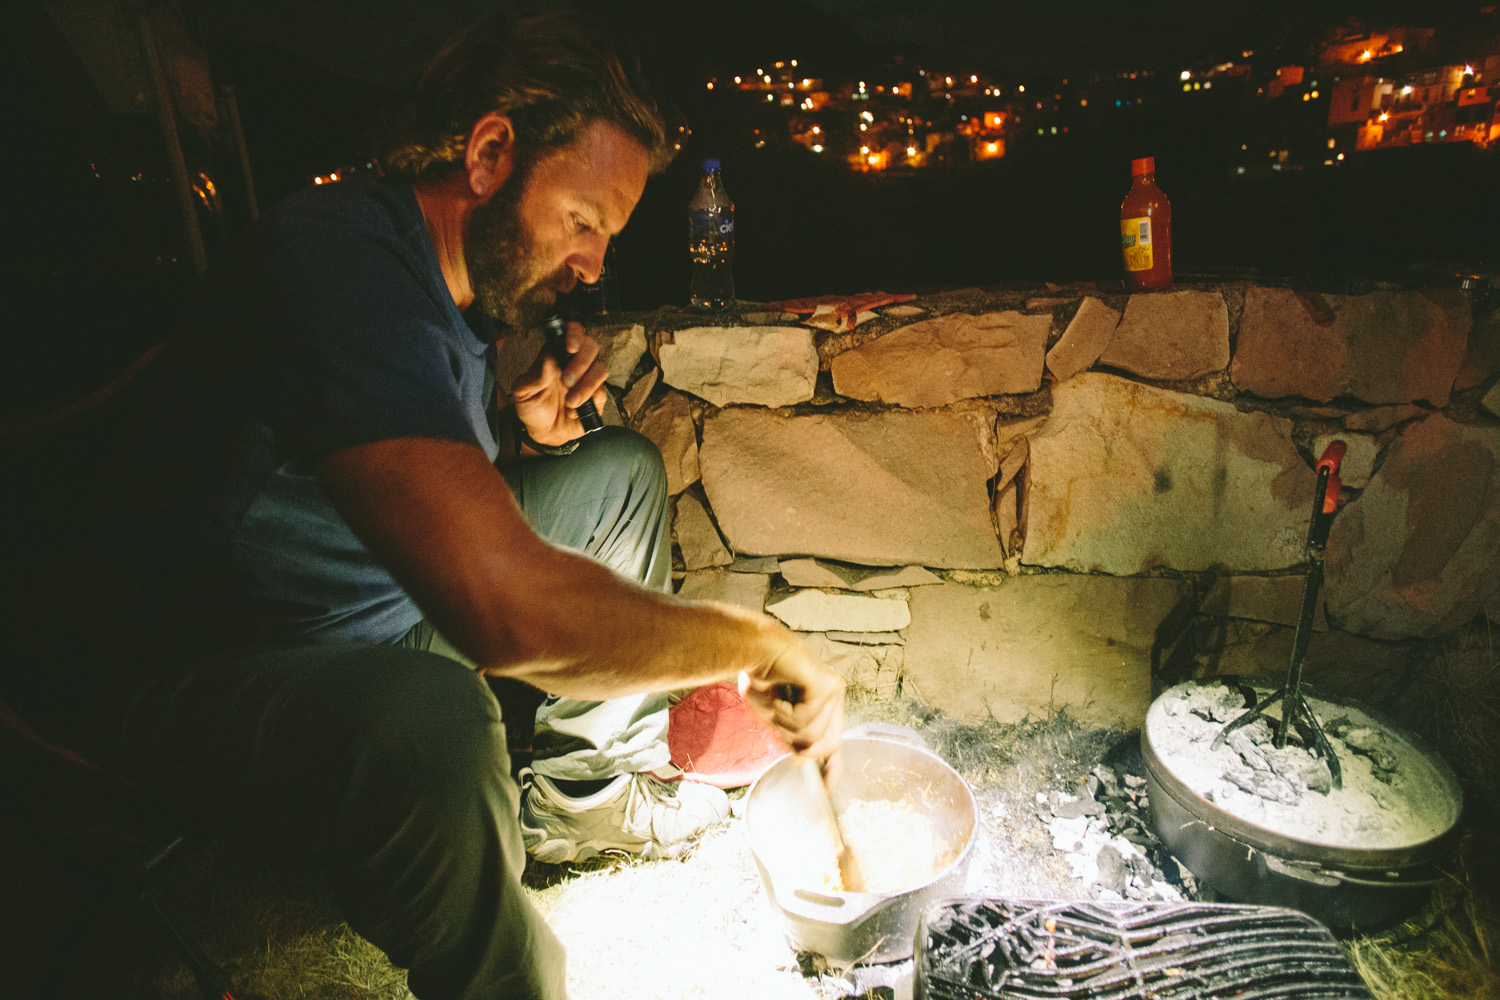 Chris cooking ribs in a dutch oven.